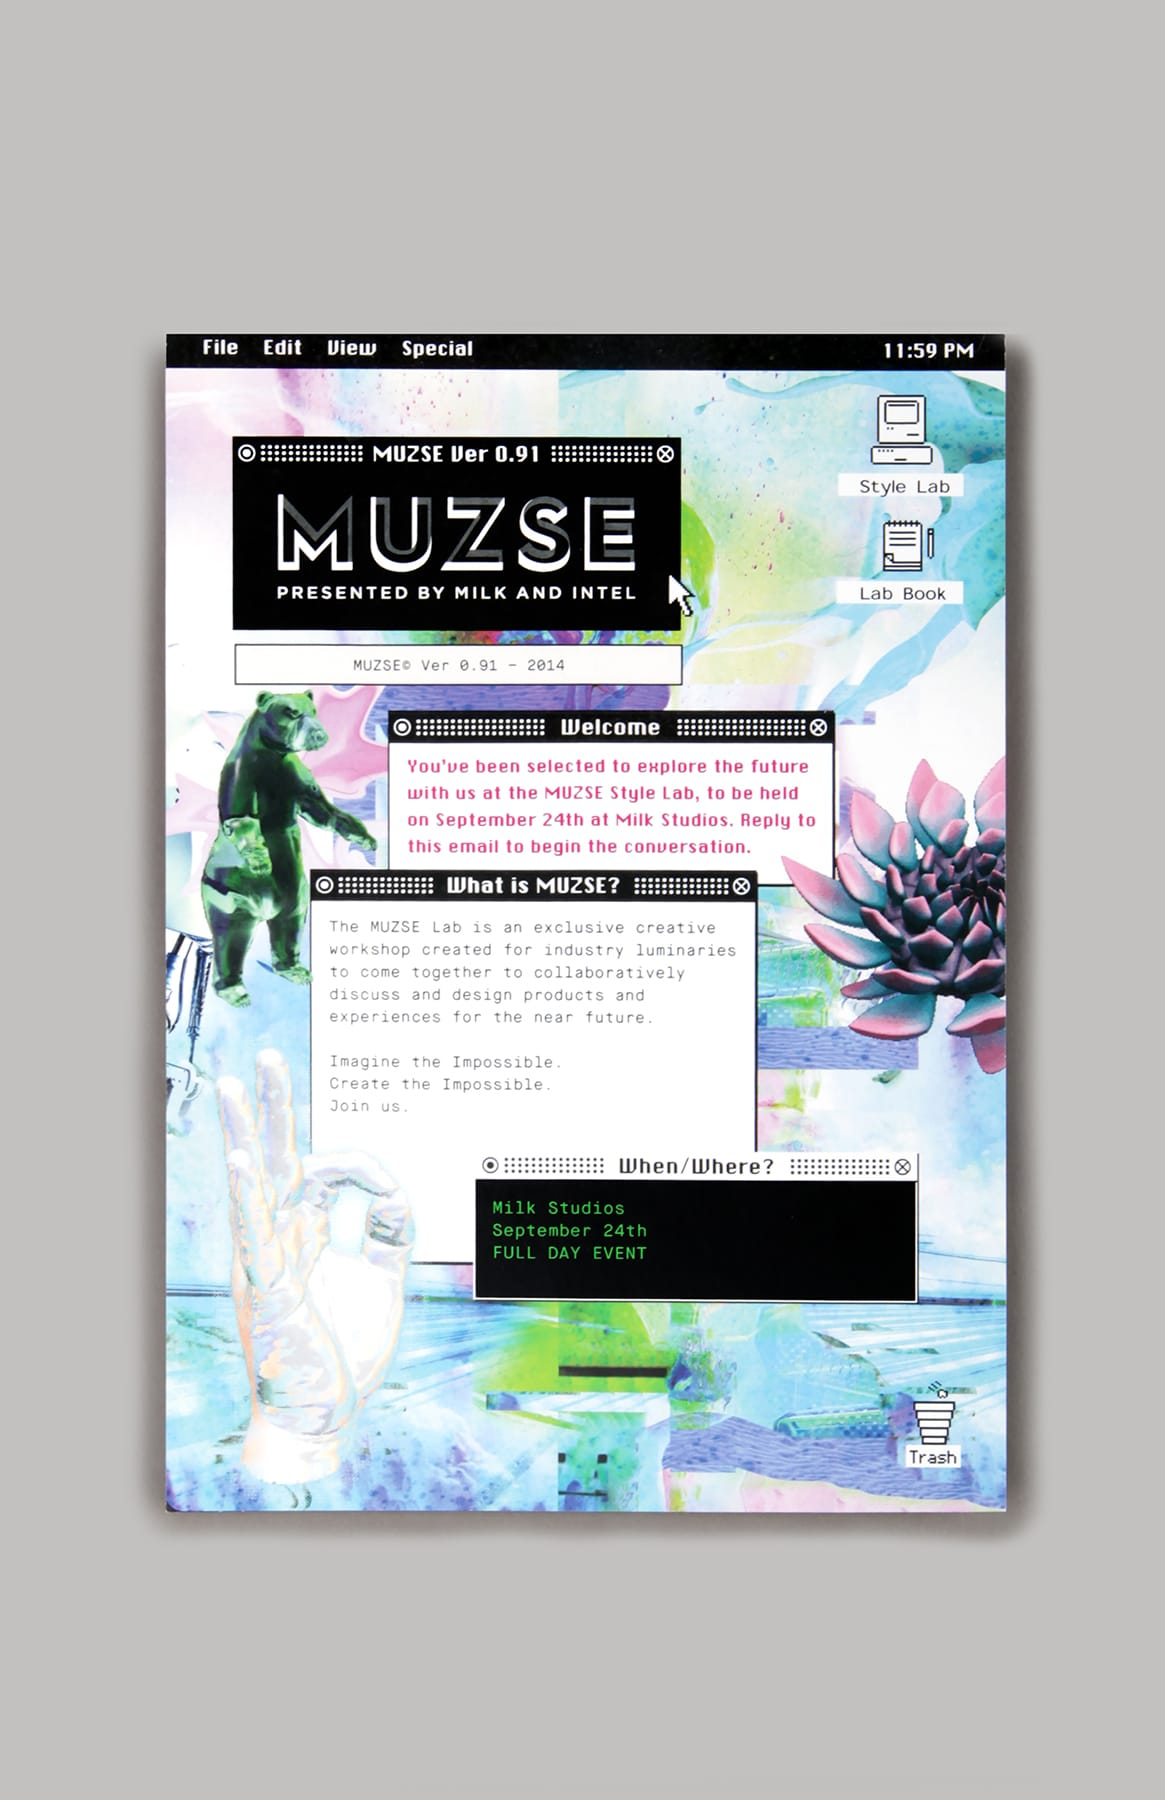 Muzse - Intel x Milk